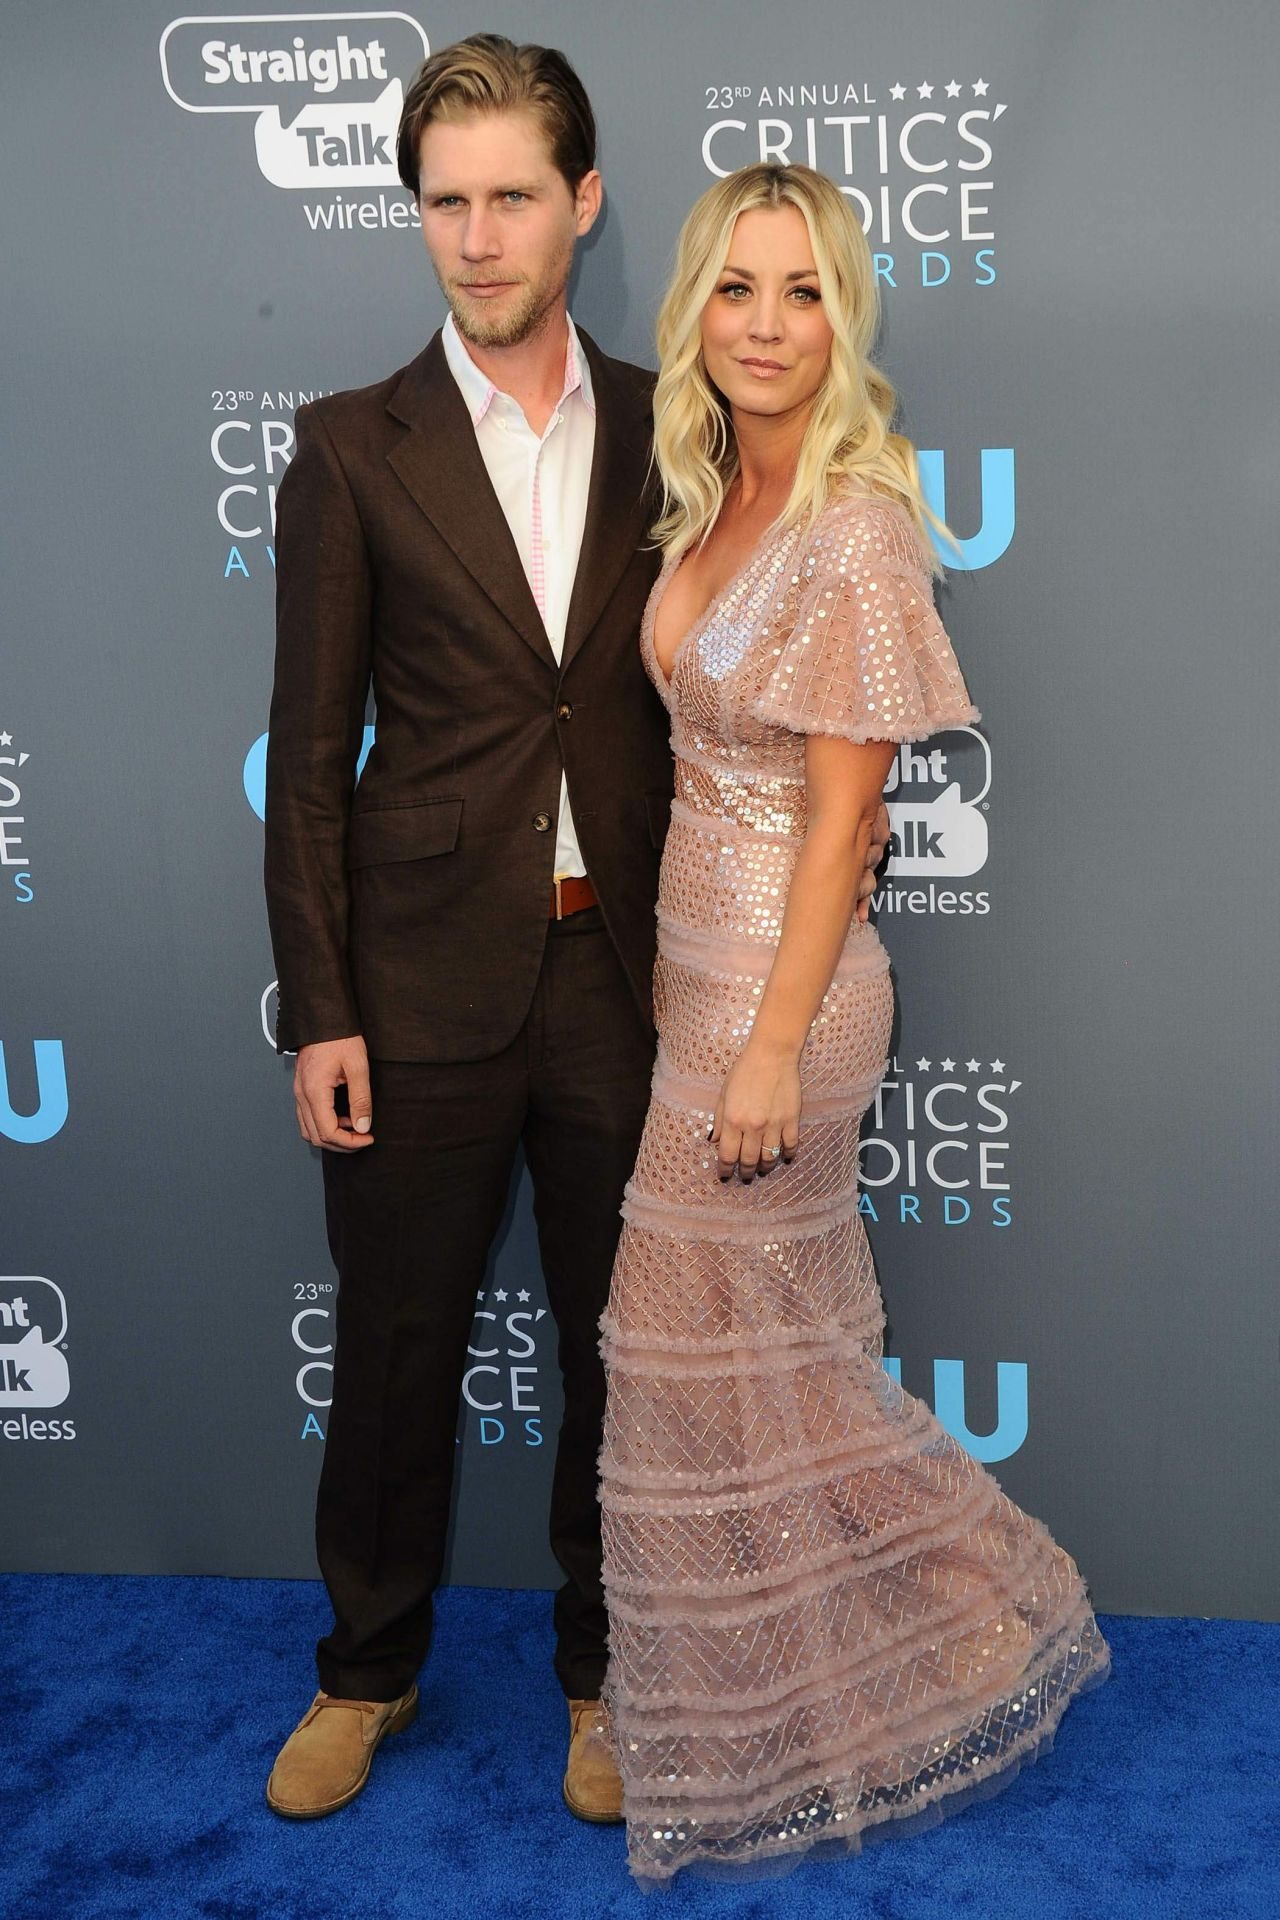 http://celebmafia.com/wp-content/uploads/2018/01/kaley-cuoco-2018-critics-choice-awards-6.jpg